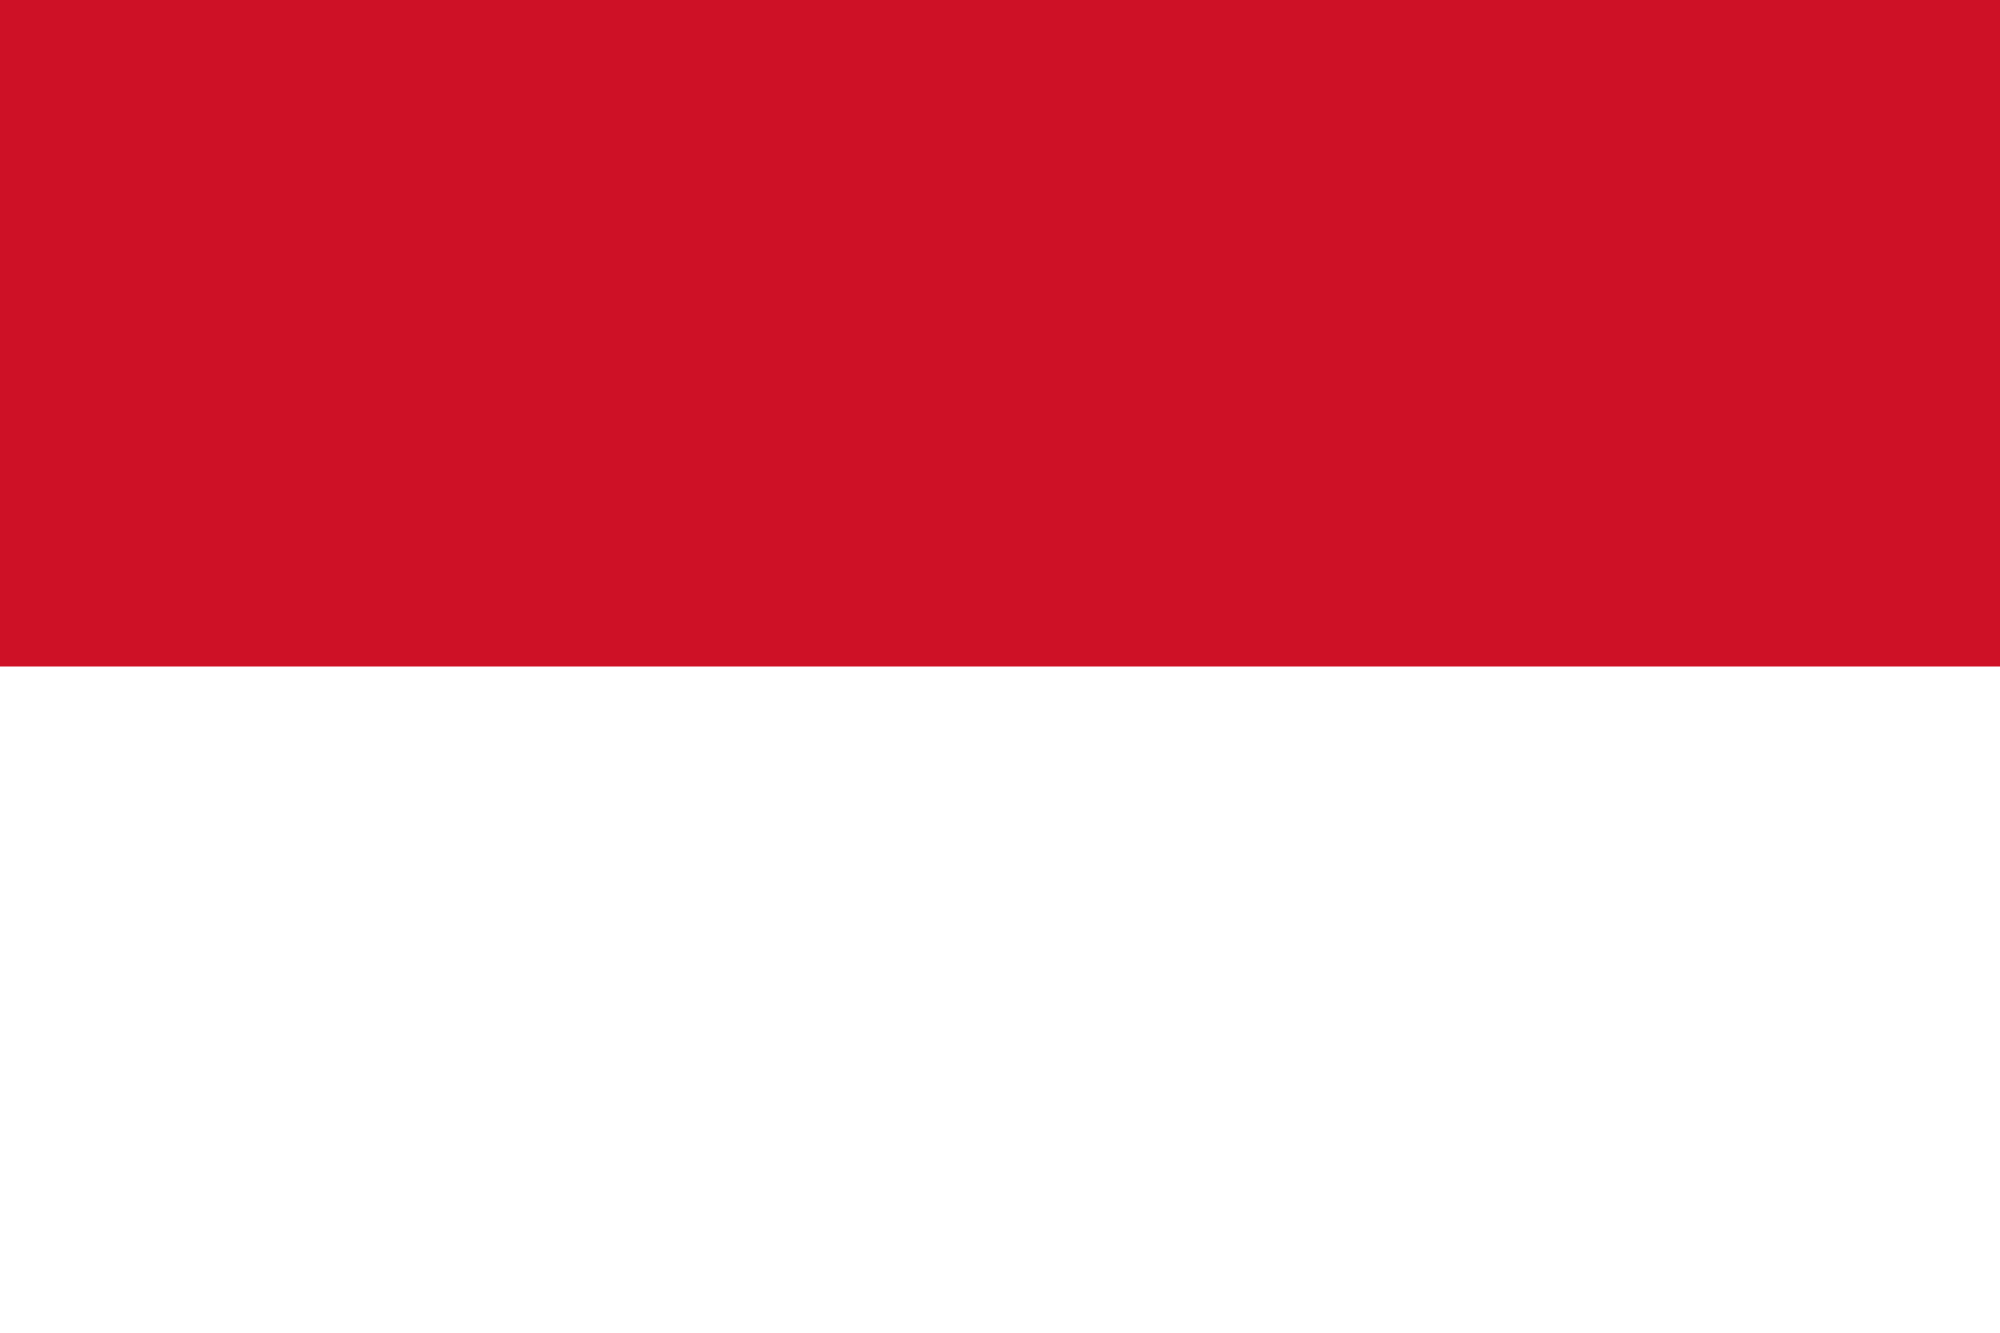 http://news.goldseek.com/2016/01.06.16/indonesia.png